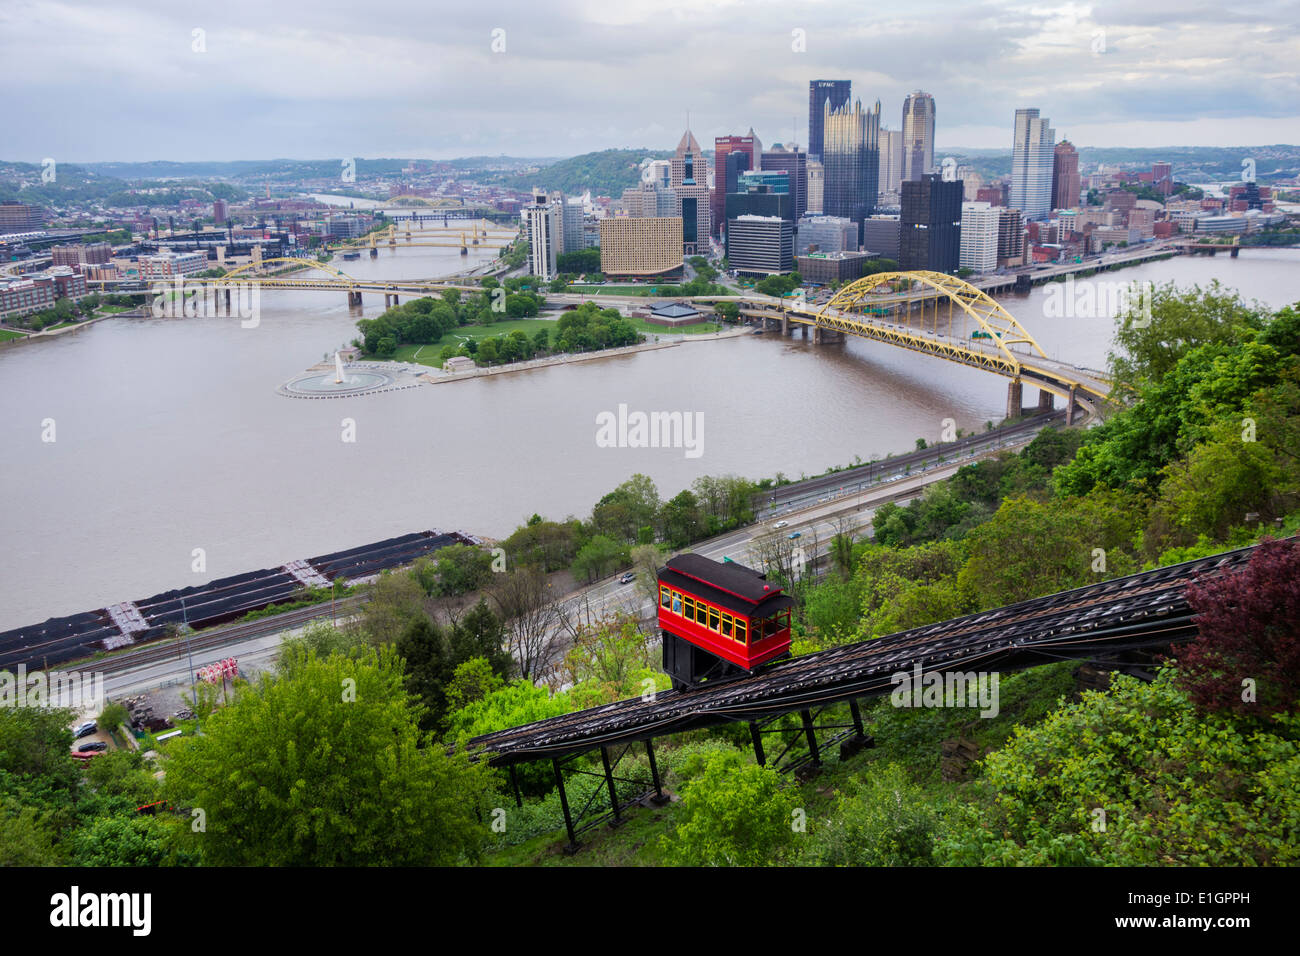 Duquesne incline in Pittsburgh PA - Stock Image